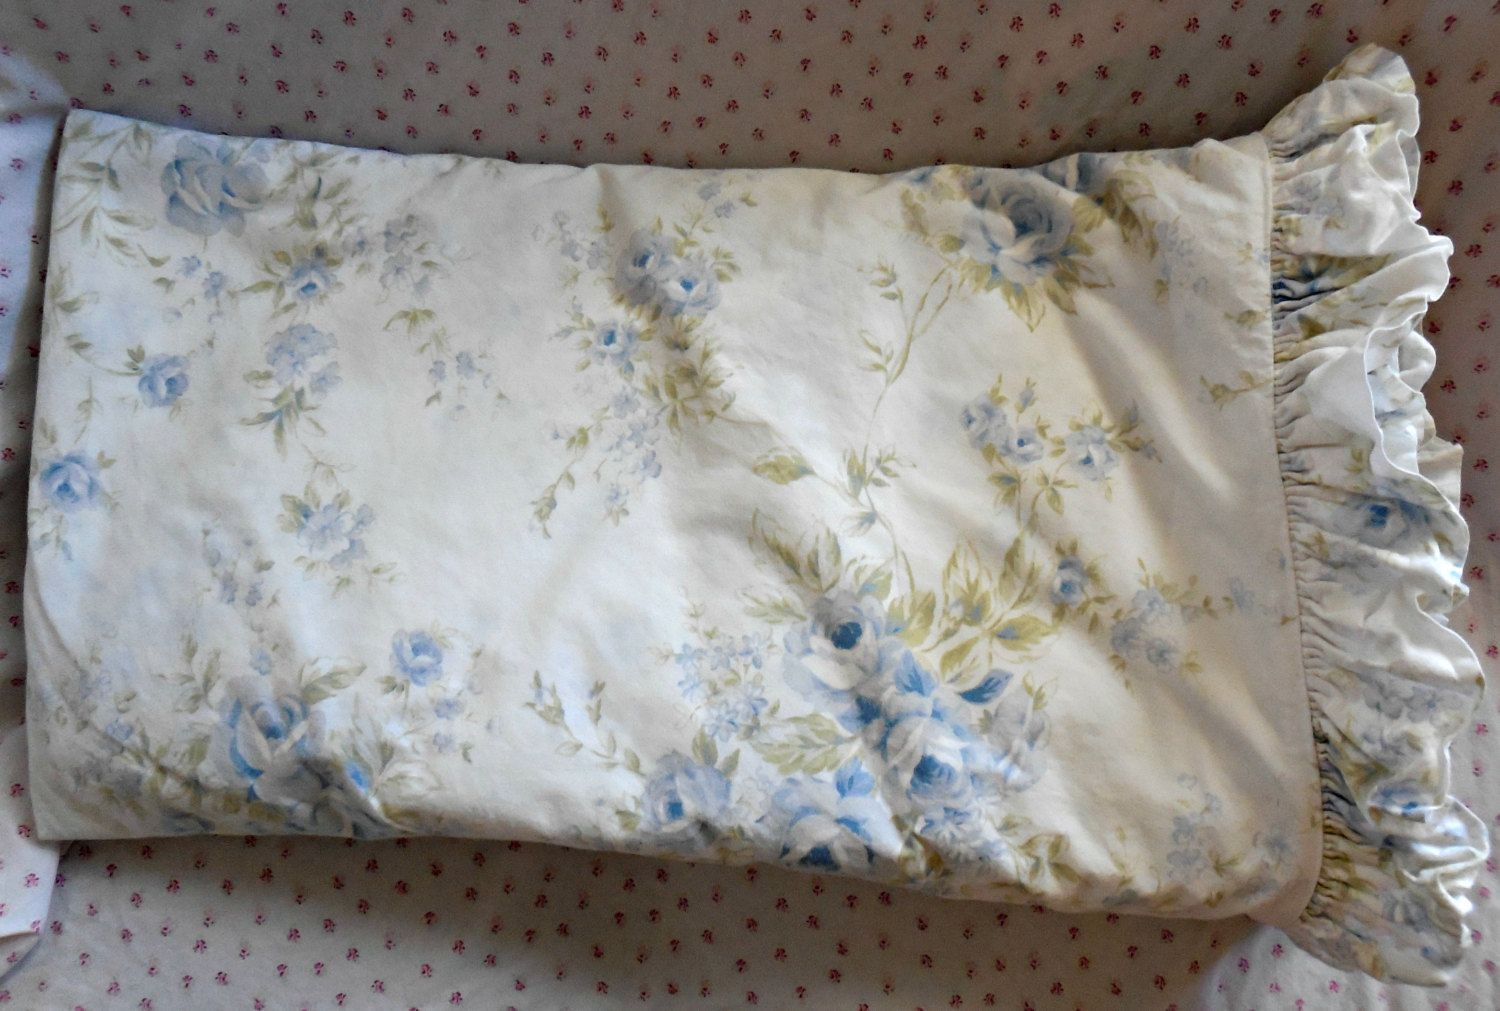 Vintage Rachel Ashwell Simply Shabby Chic Duvet Cover Two Shams Queen British Blue Roses Go Shabby Chic Duvet Cover Shabby Chic Duvet Simply Shabby Chic